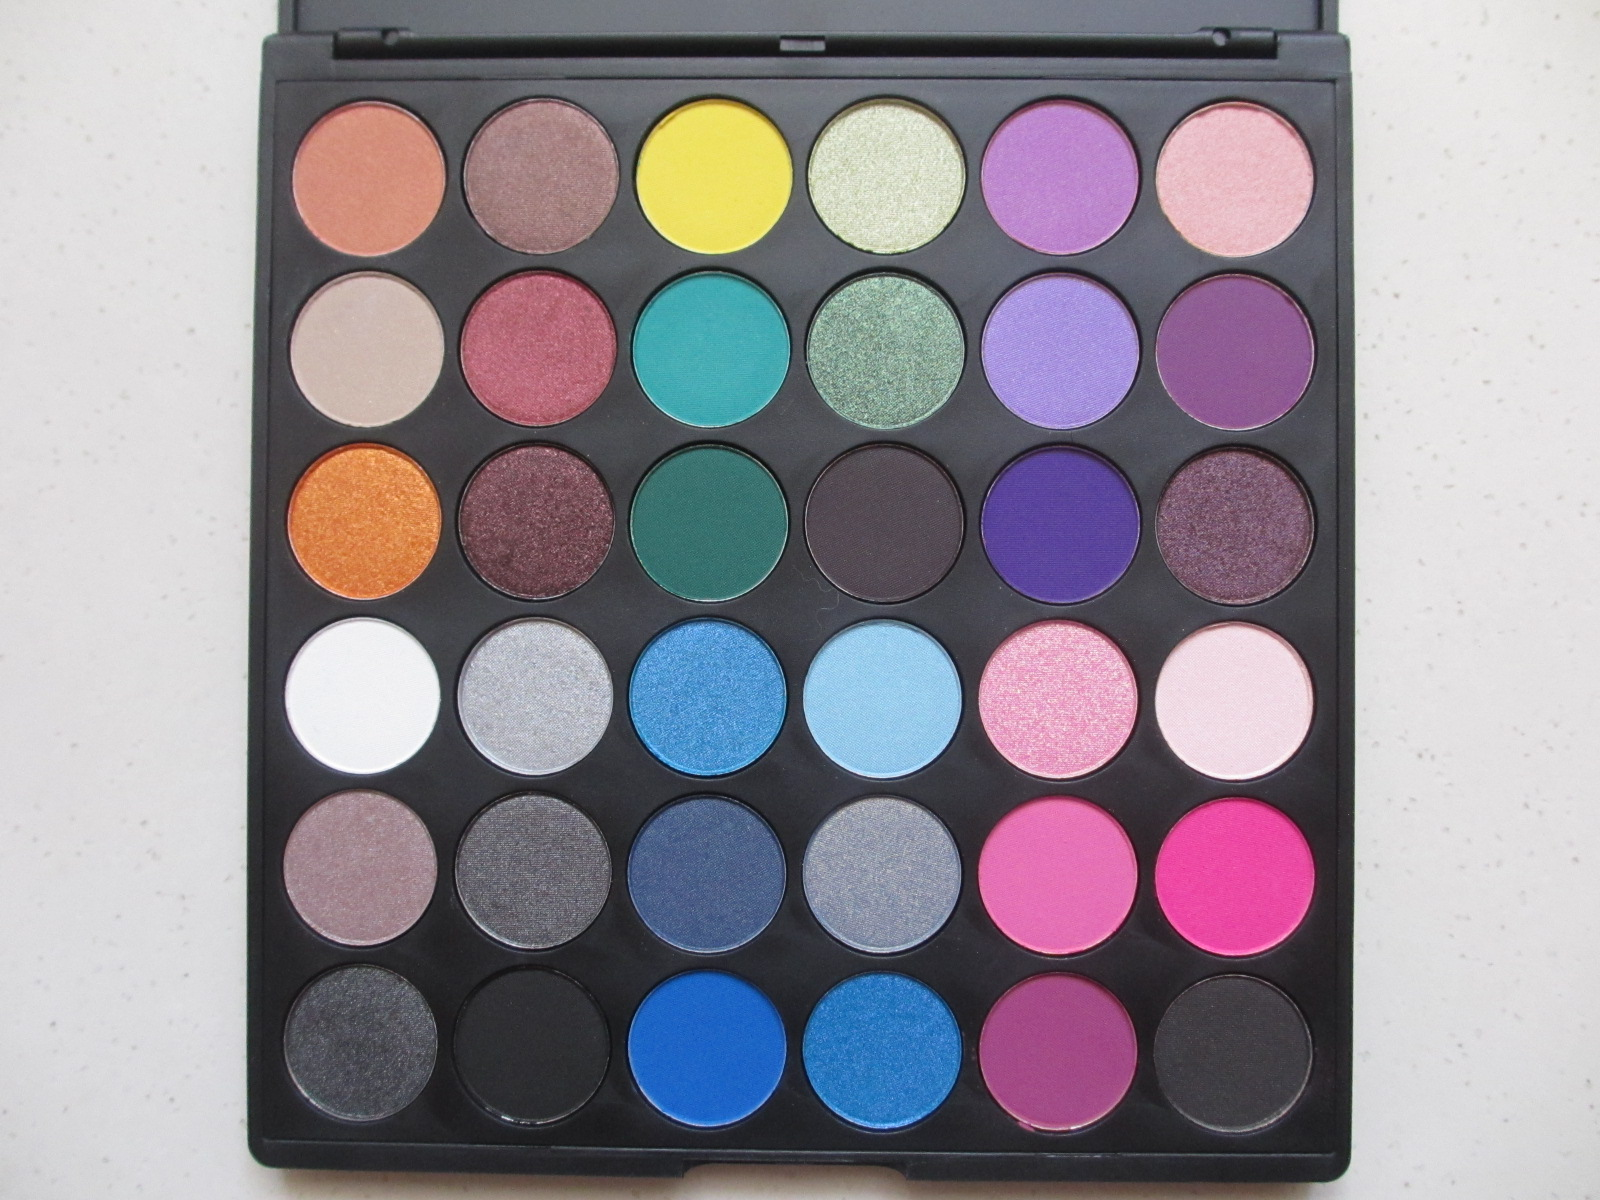 Juvia's Place Nubian 2nd Edition Palette Review. The New